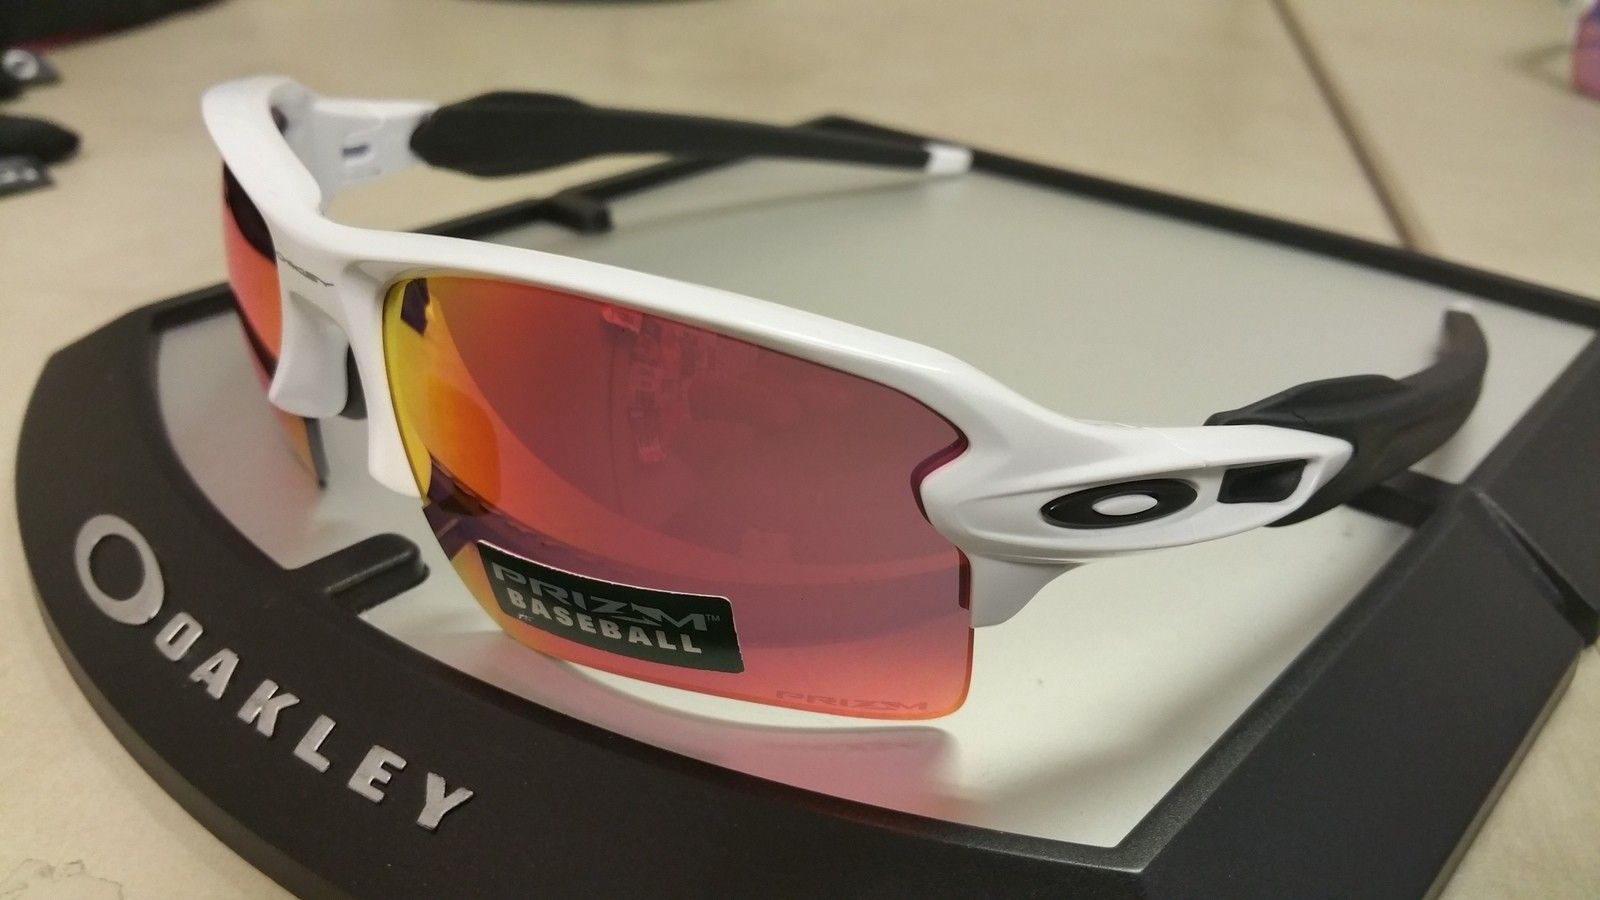 A few Prizm flak jacket 2.0 glasses for sale. - uploadfromtaptalk1438097082833.jpg